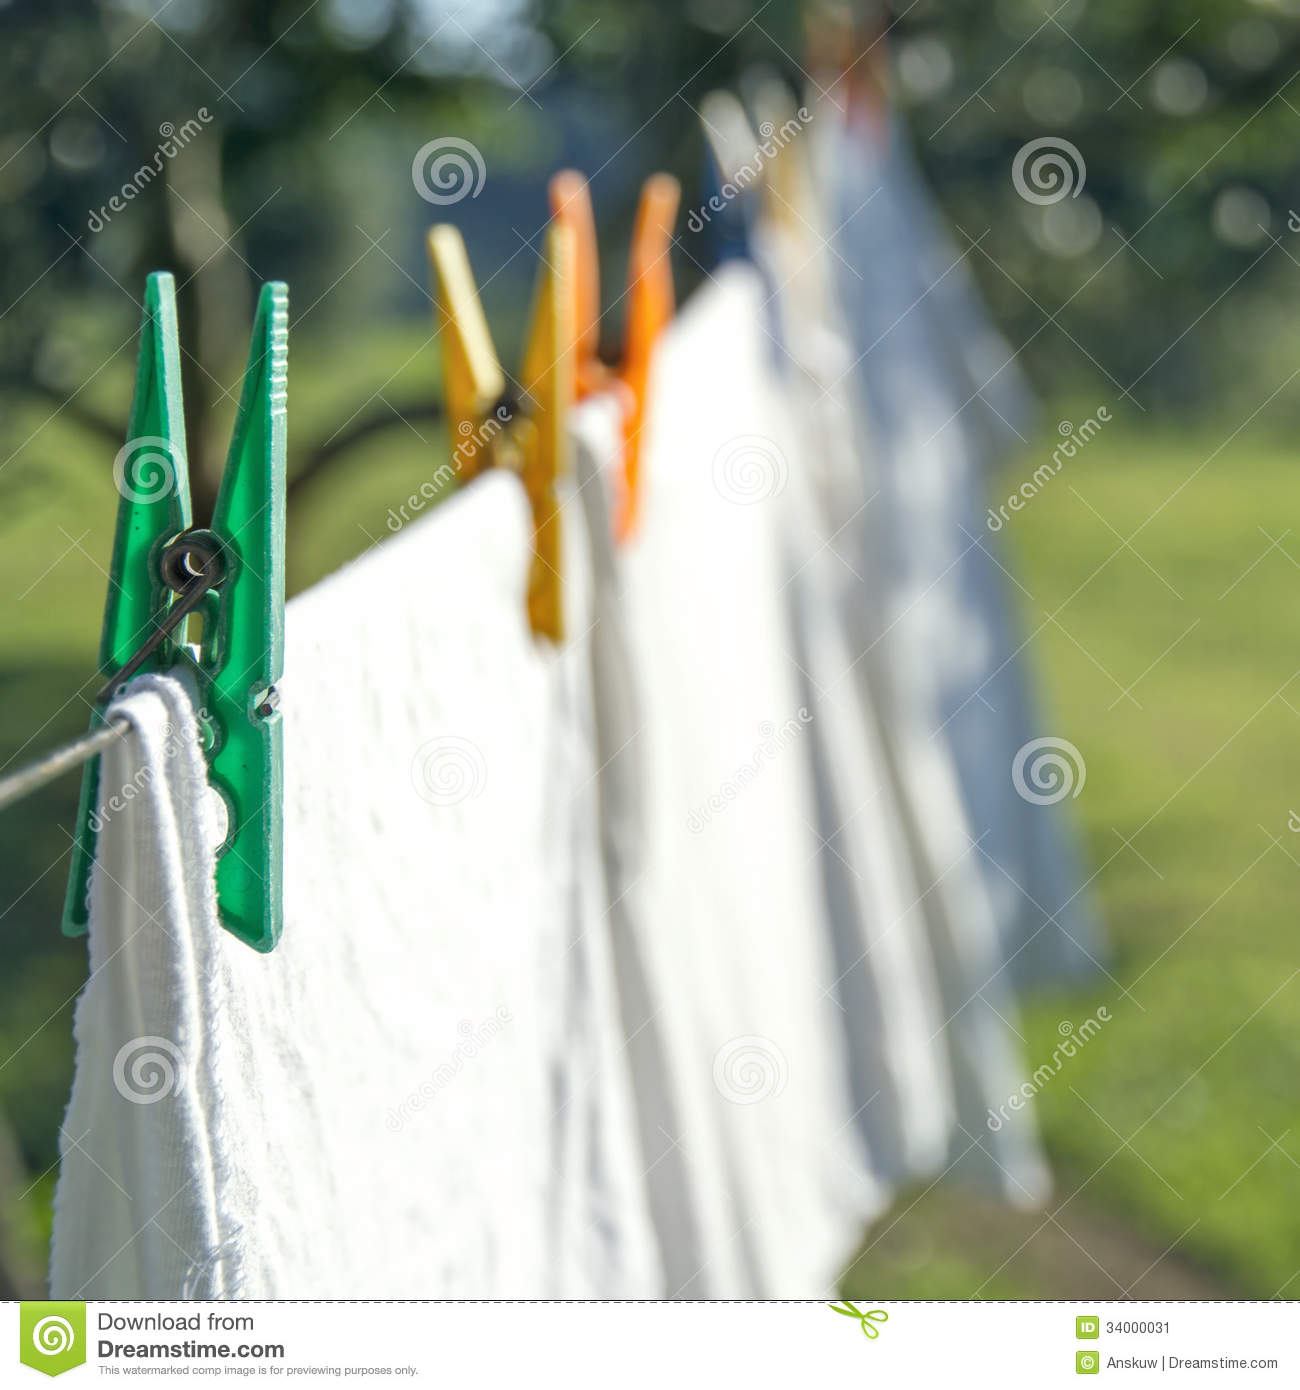 Clothes Drying On A Clothesline ~ White laundry drying on a clothesline stock image